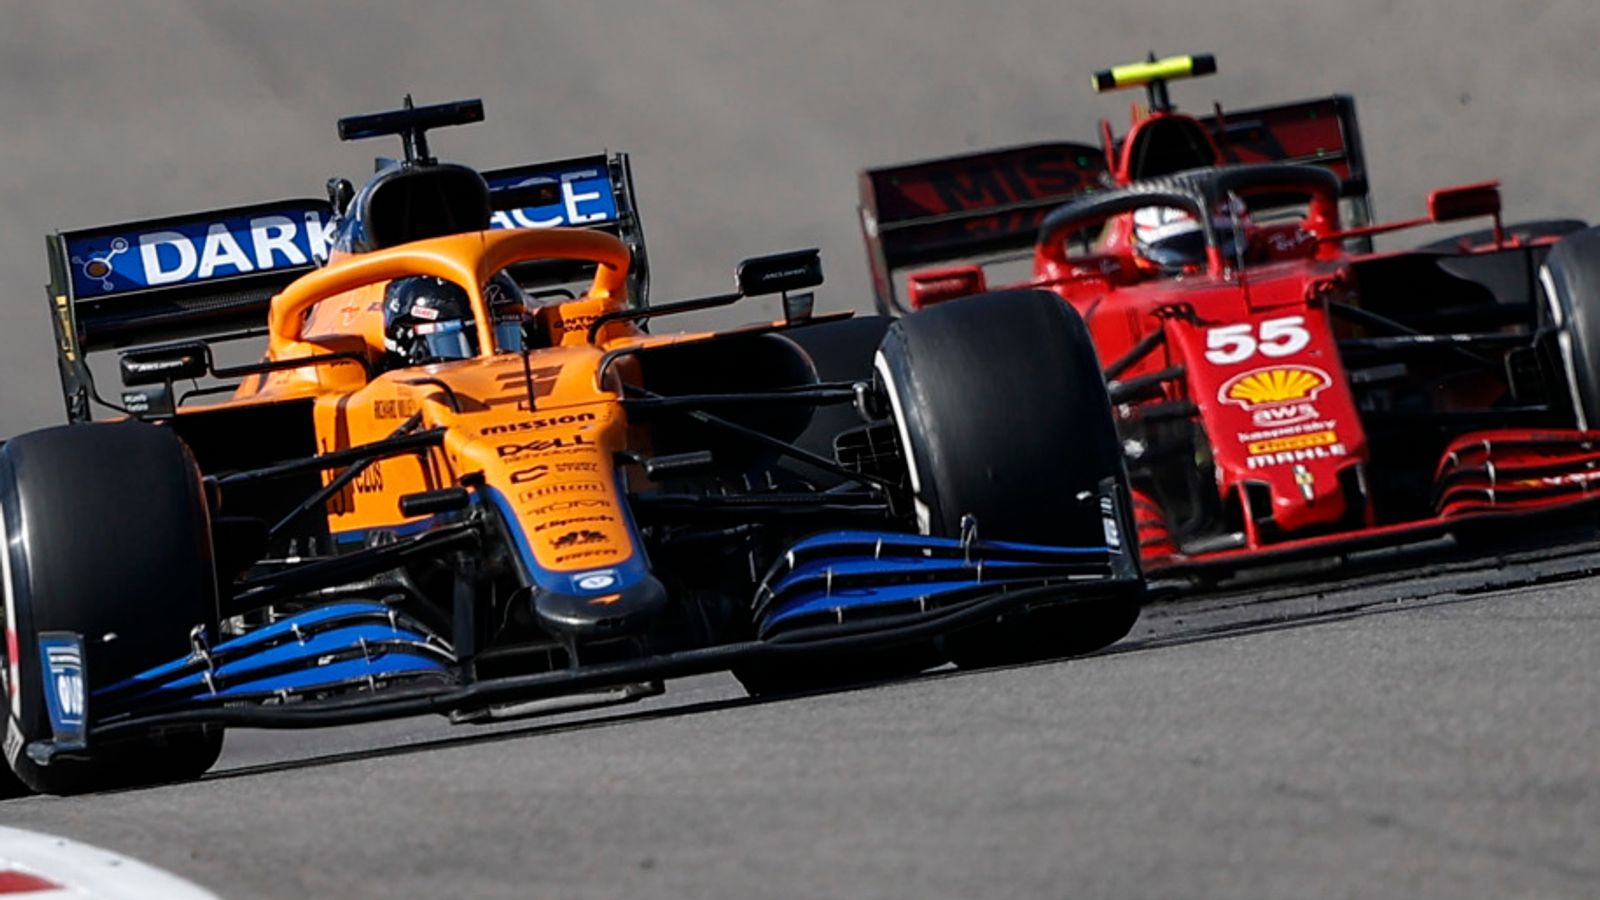 Who wins battle of F1 giants? McLaren's discomfort as Ferrari find speed to close in on third